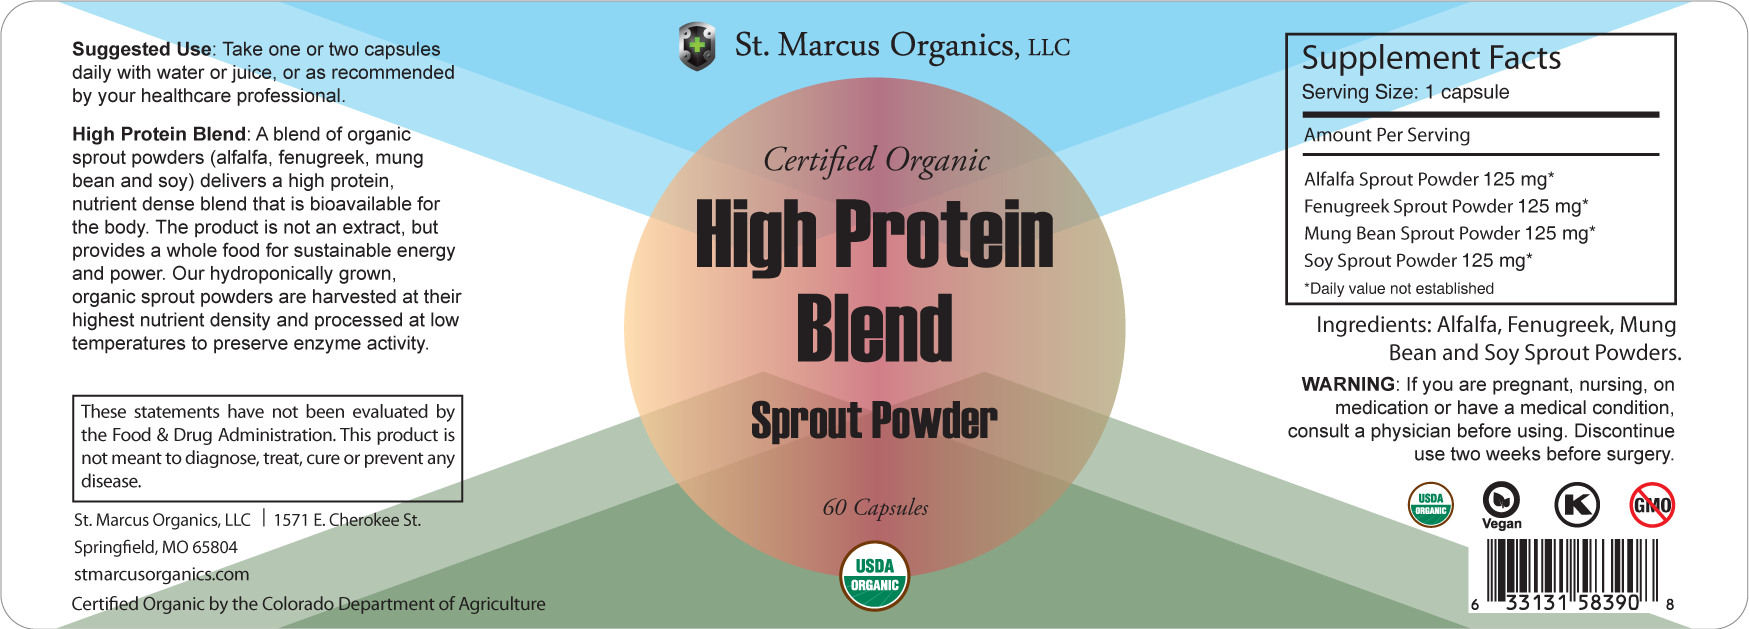 High-Protein-Sprout-Powder-Capsules-St-Marcus-Organics